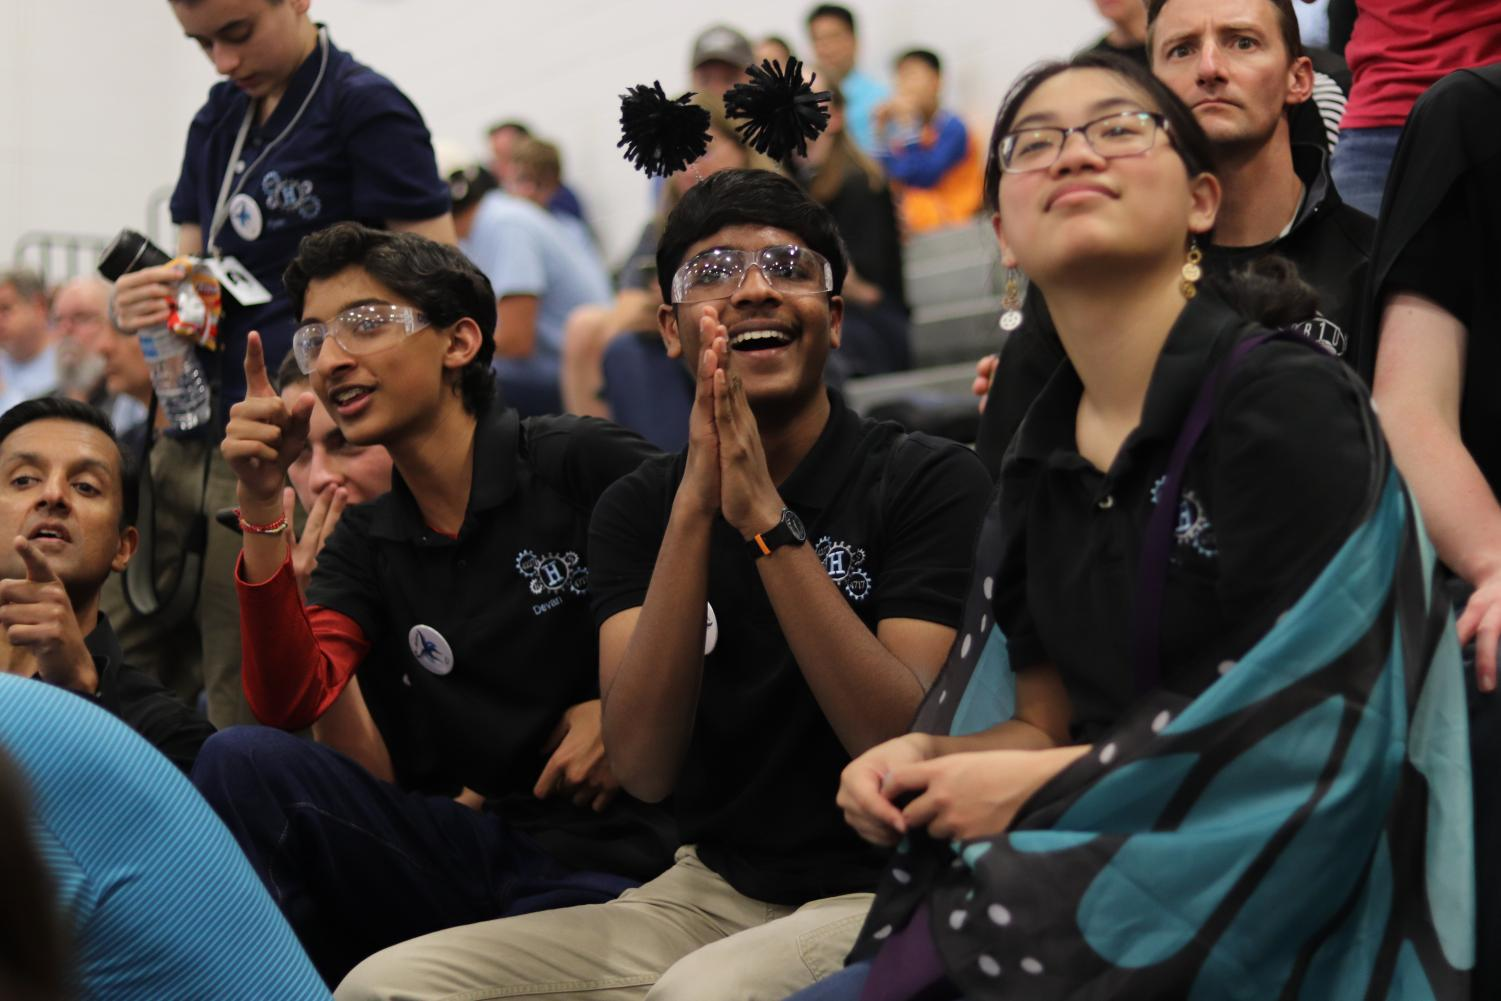 Sophomore Devan Ravani and freshman Nitin Balasubramanian cheer in the stands for their team, Metal Morphosis, during semi-finals.